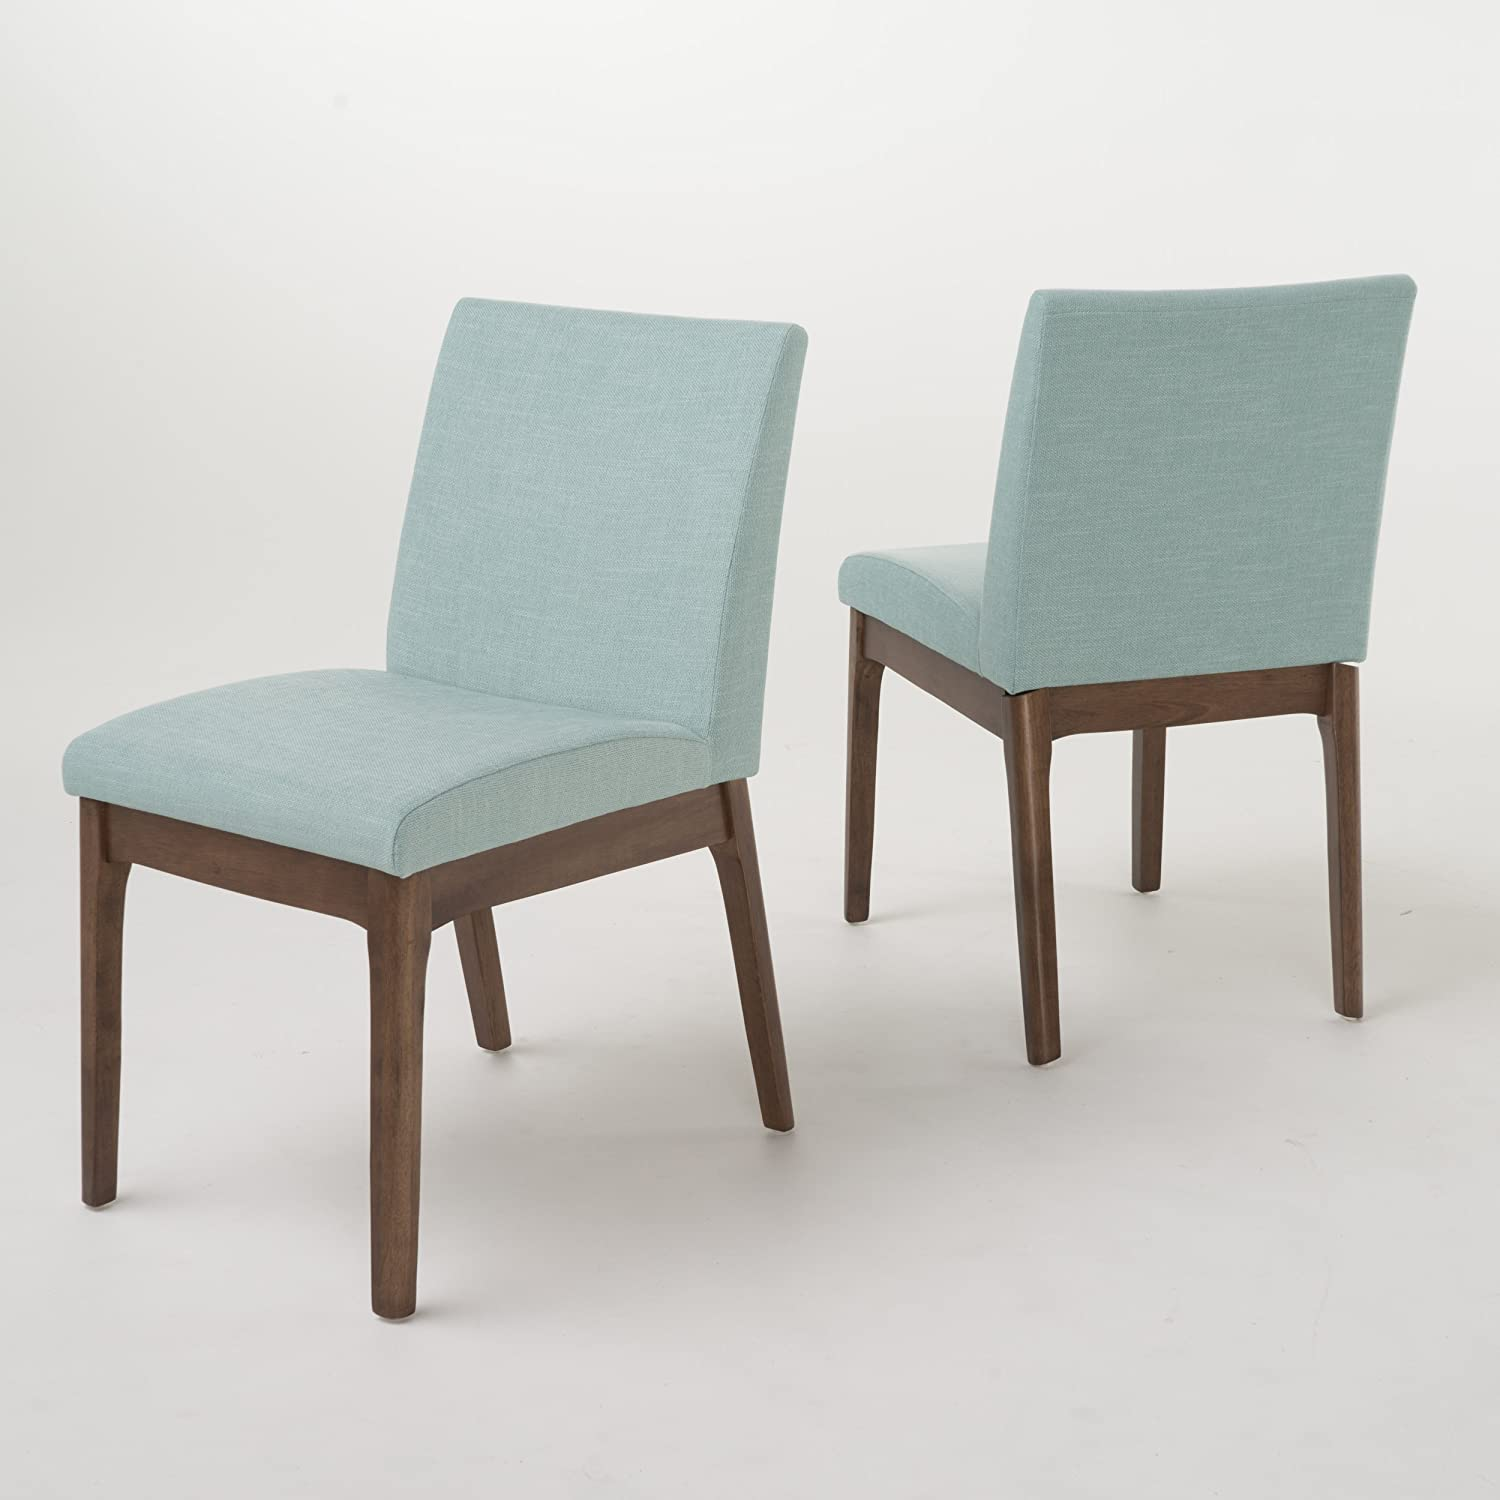 Christopher Knight Home Kwame Fabric Dining Chair (Set Of 2), Mint